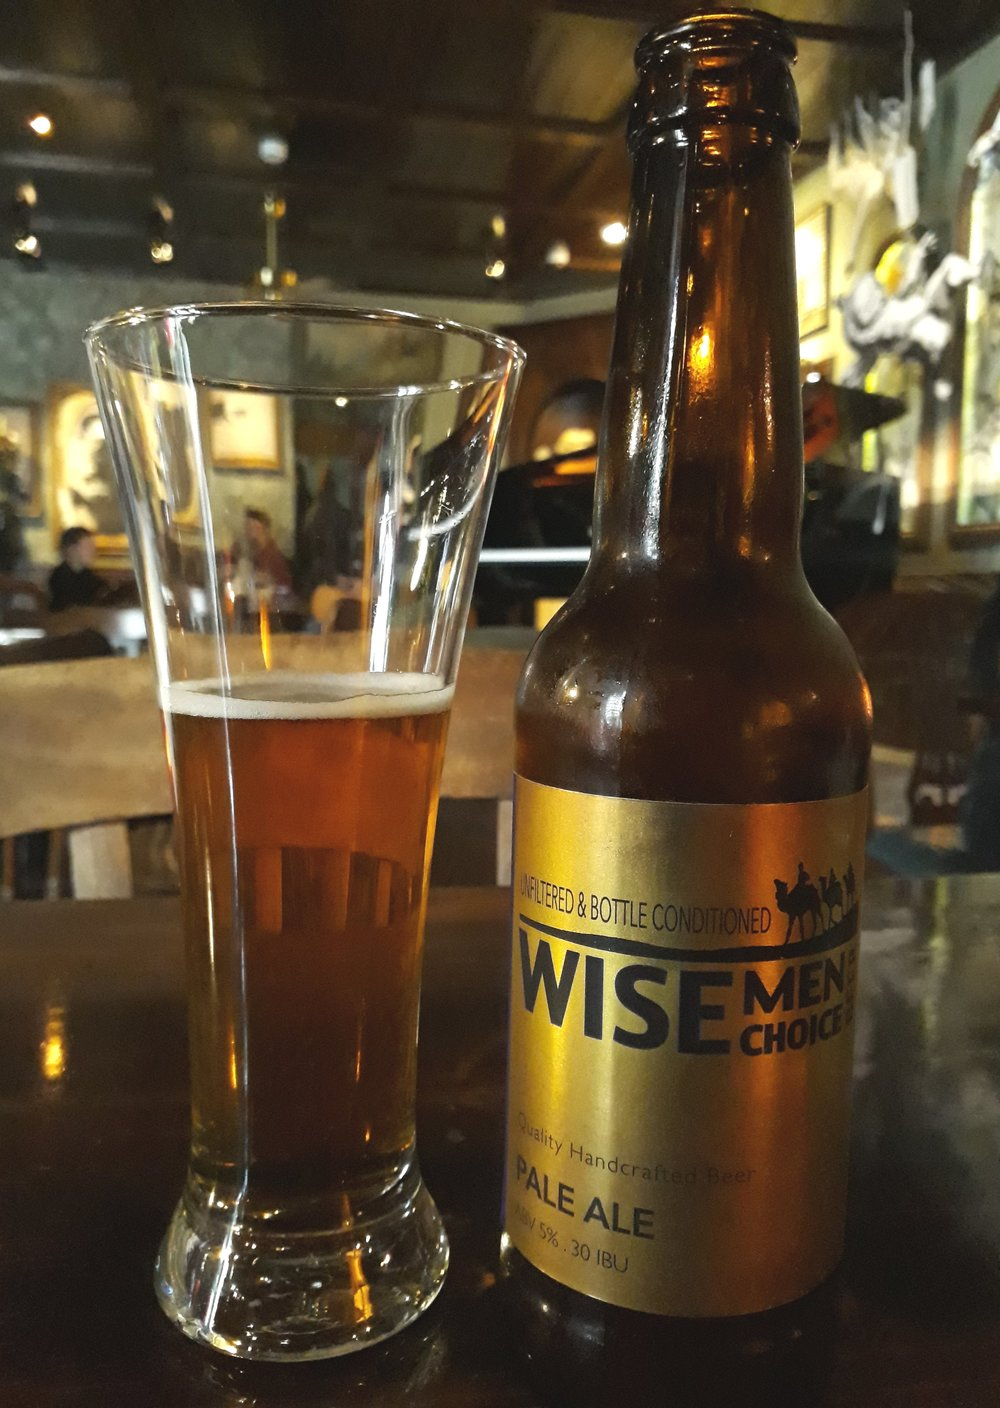 wise-men-choice-beer-palestine